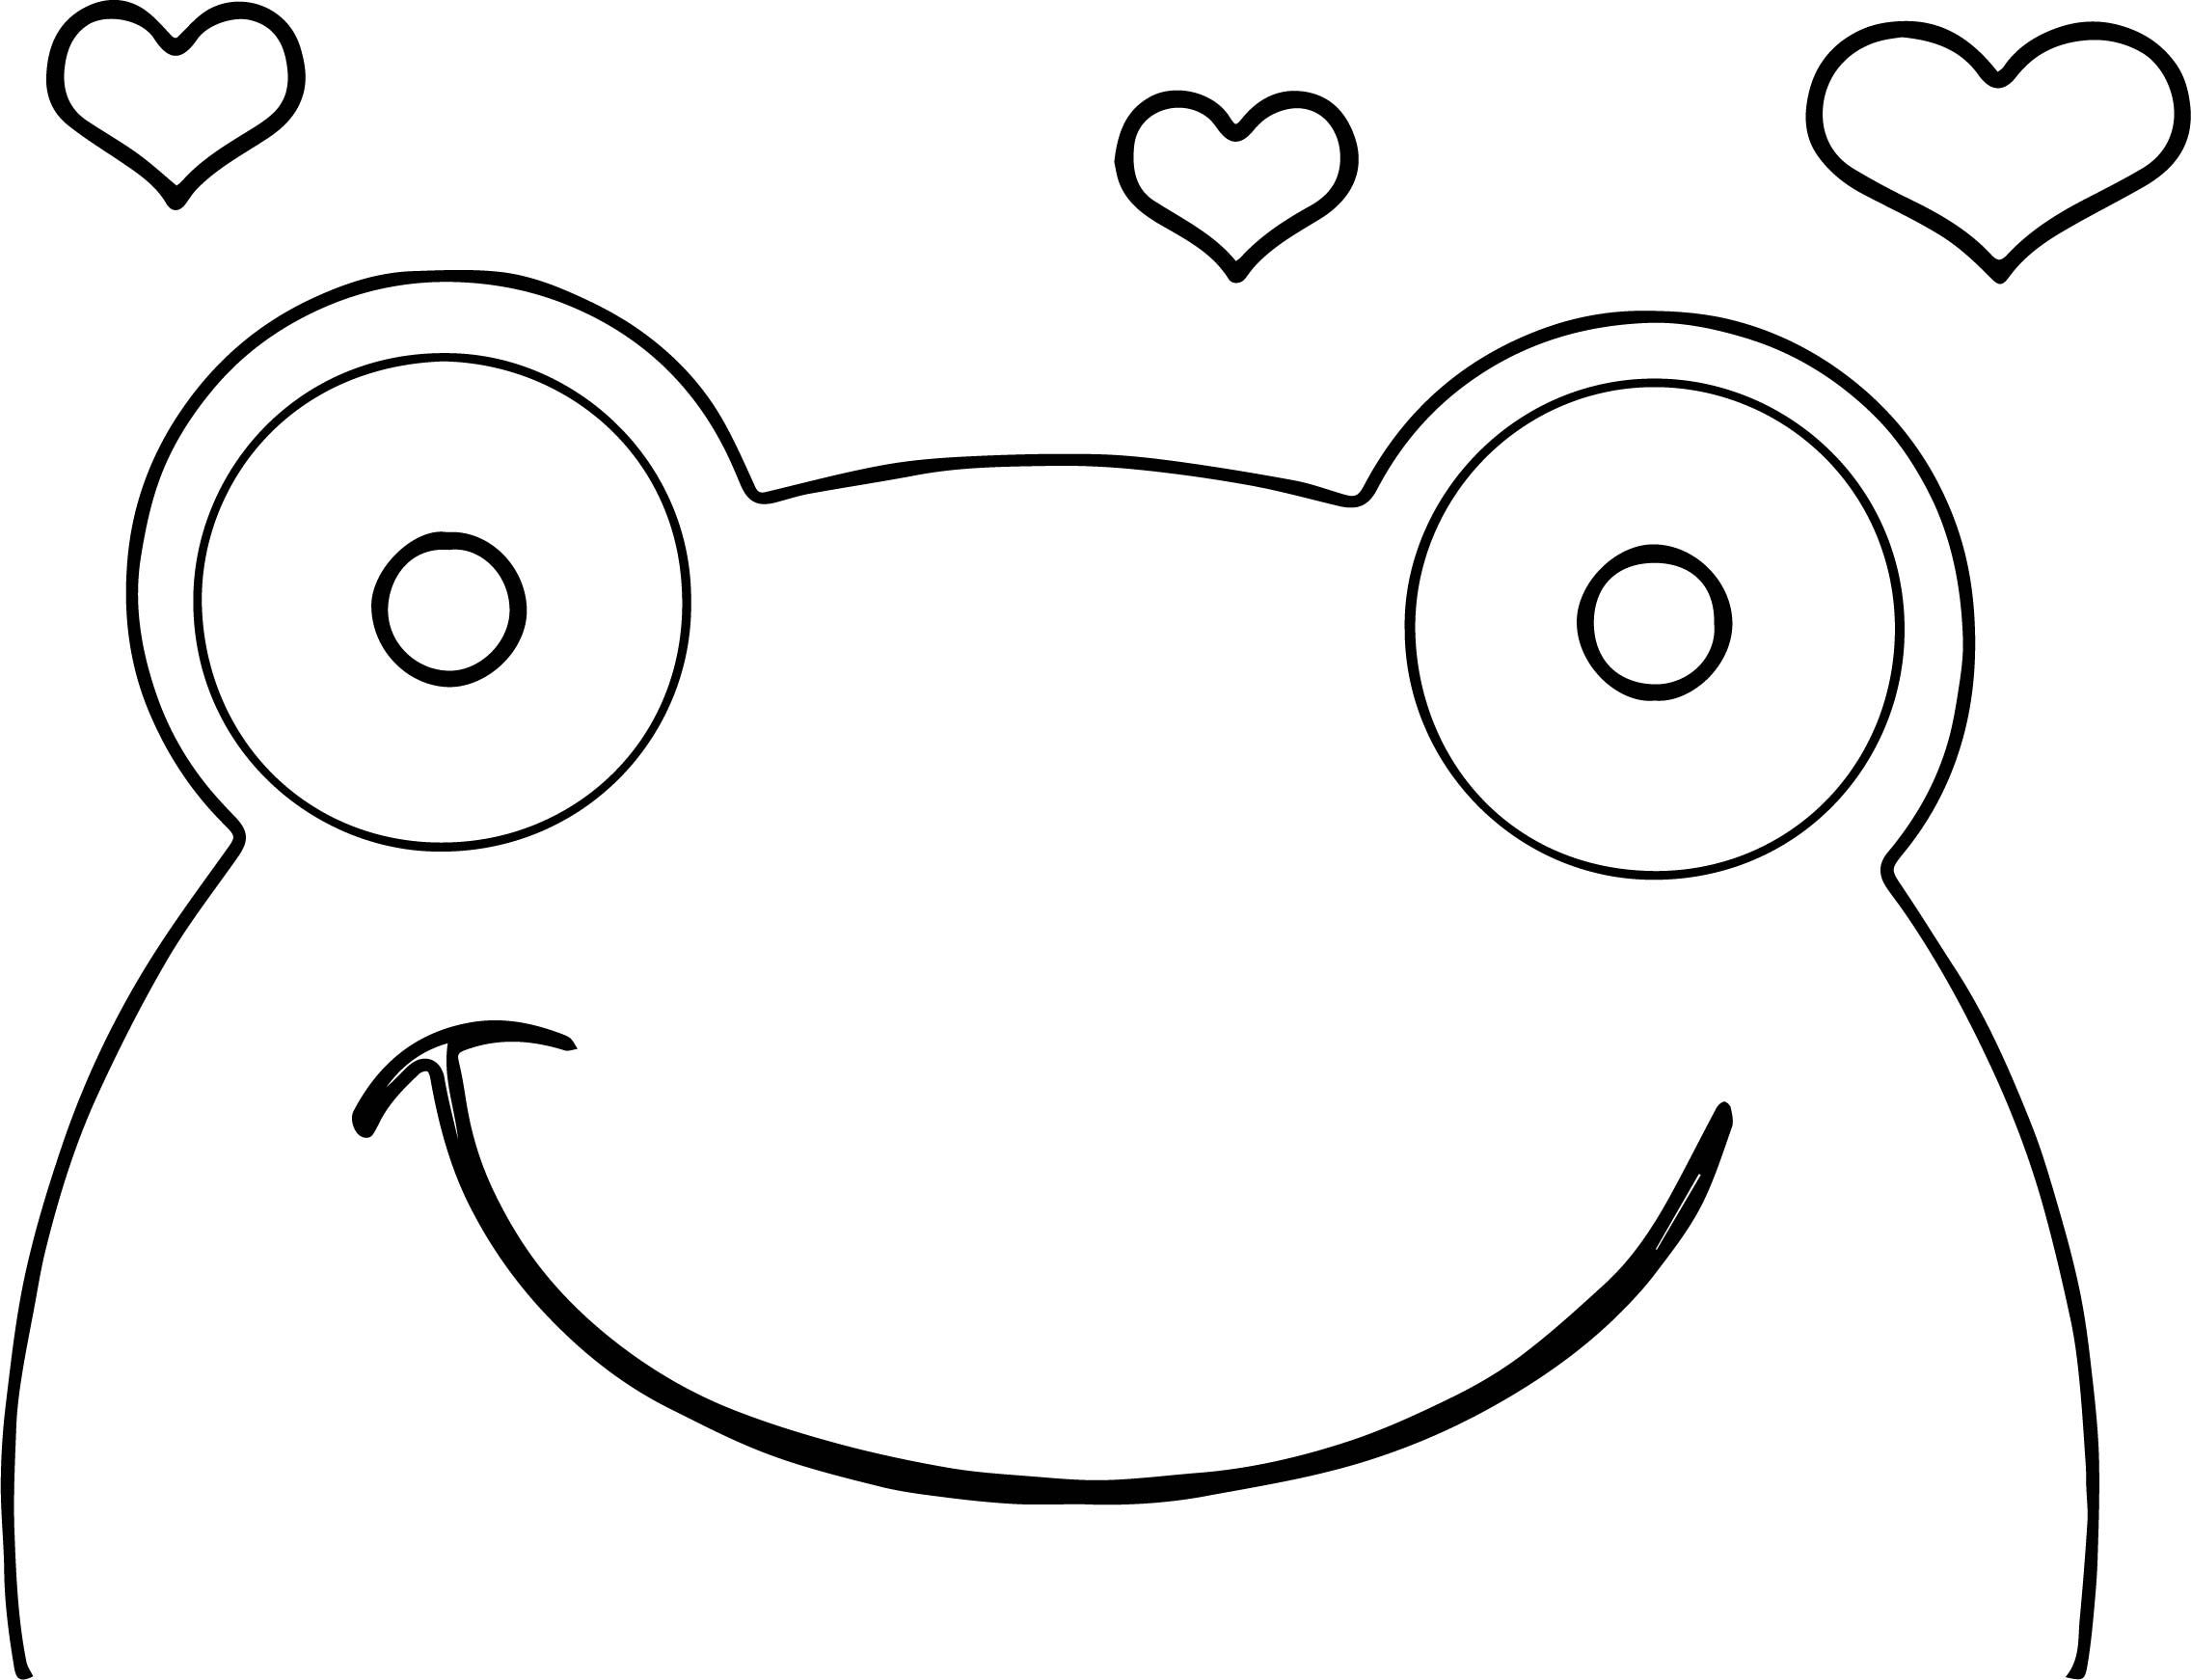 frog face coloring page frog cut out template frog mask colouring pages diy coloring page frog face